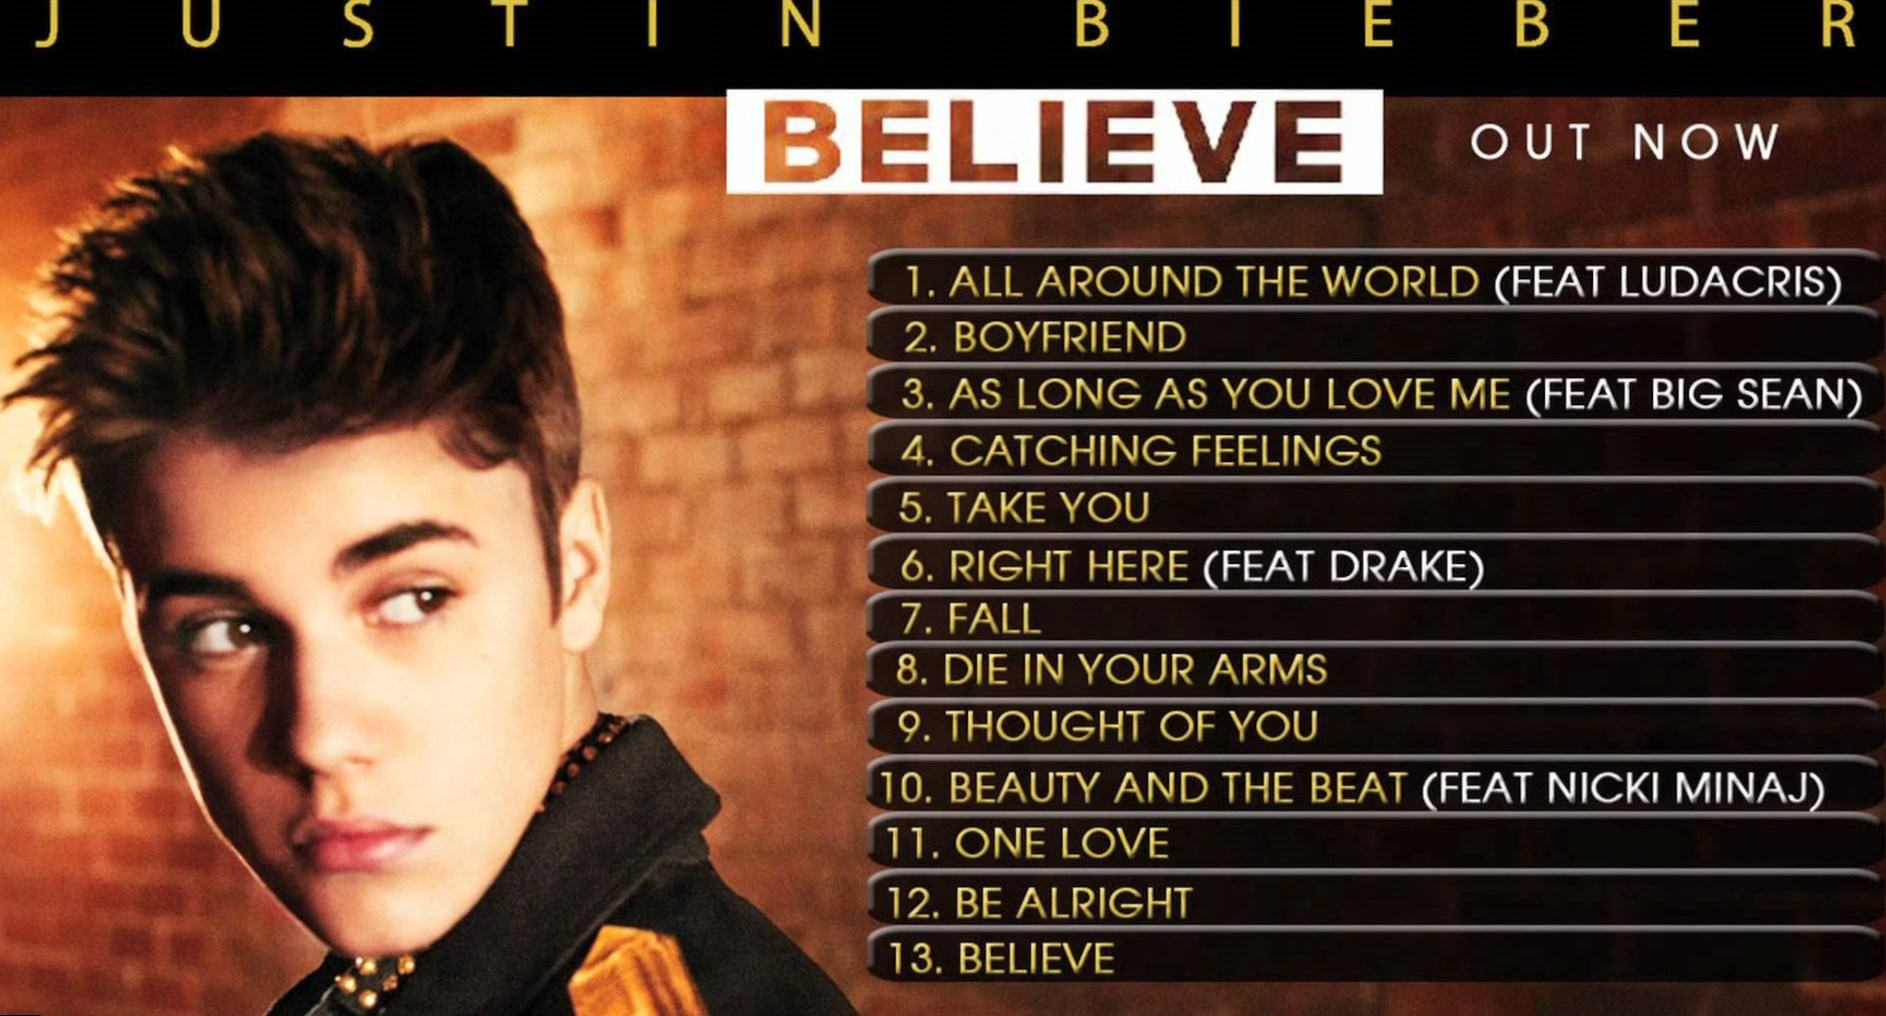 Justin Bieber - Best songs and Albums